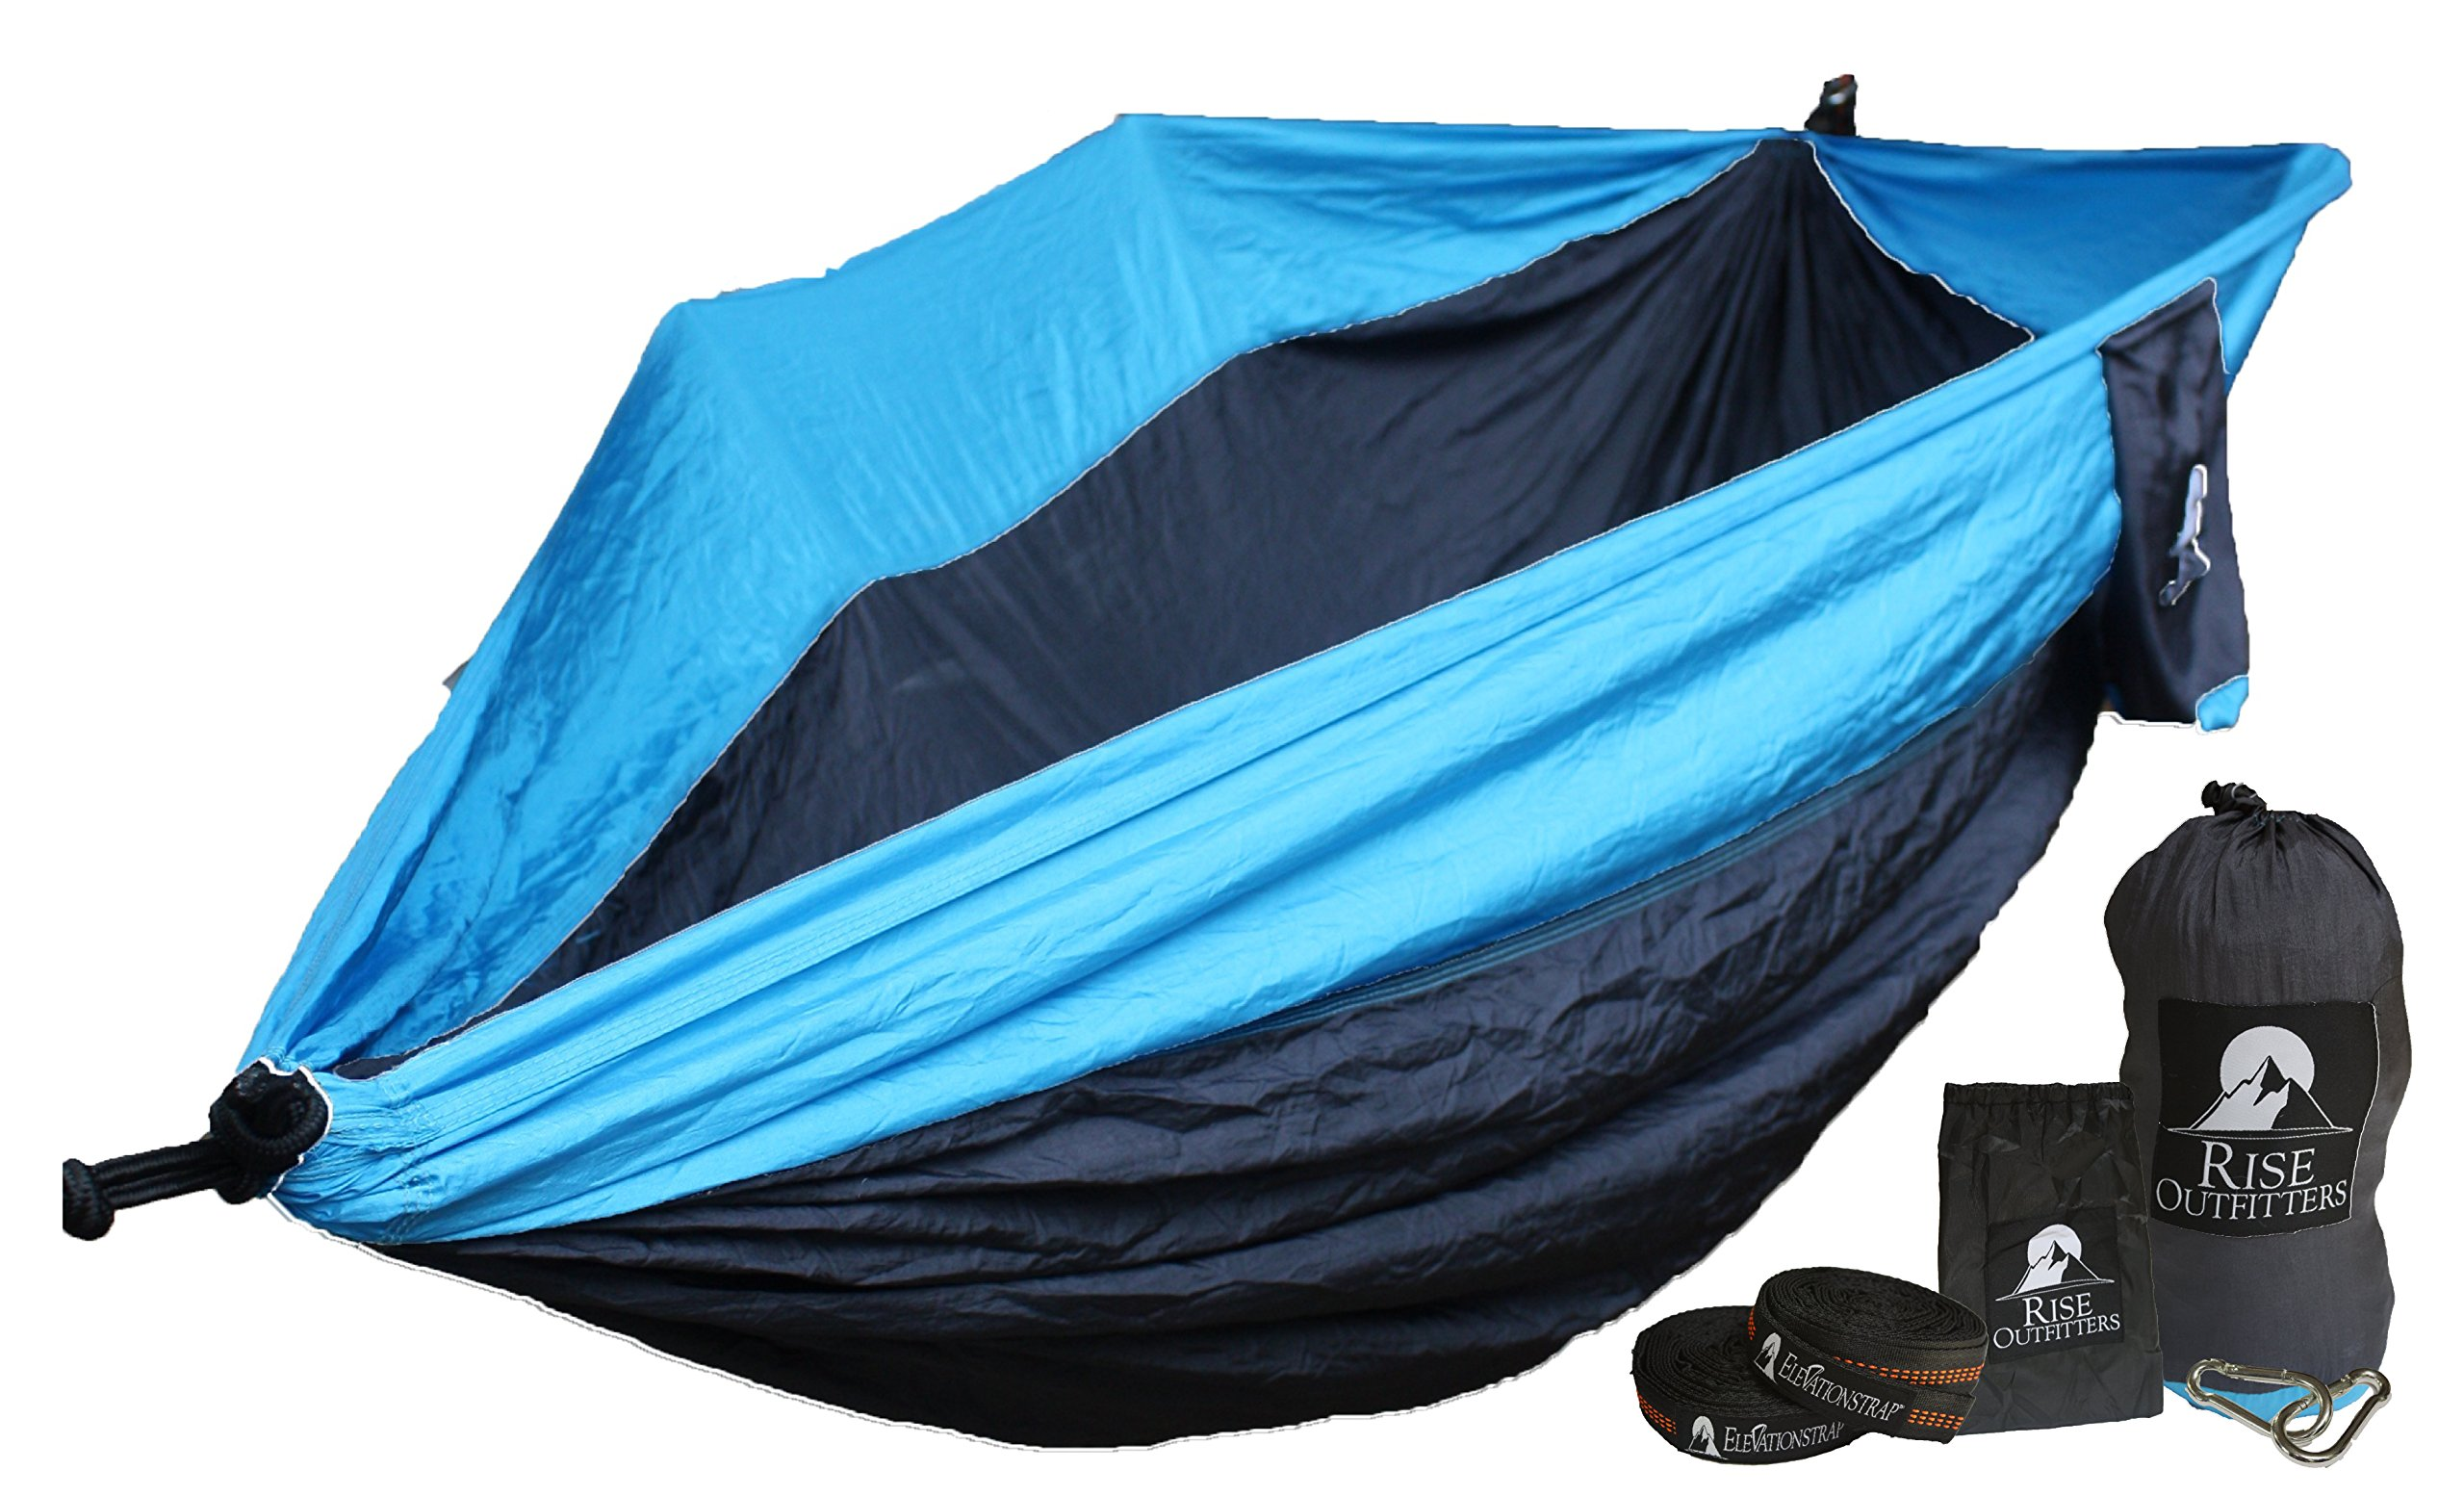 Unigear Double Camping Hammock, Portable Parachute Nylon Hammock with Tree Straps for Backpacking, Camping, Hiking, Travel, Beach and Yard (Black/Blue, 270cm x 140cm)